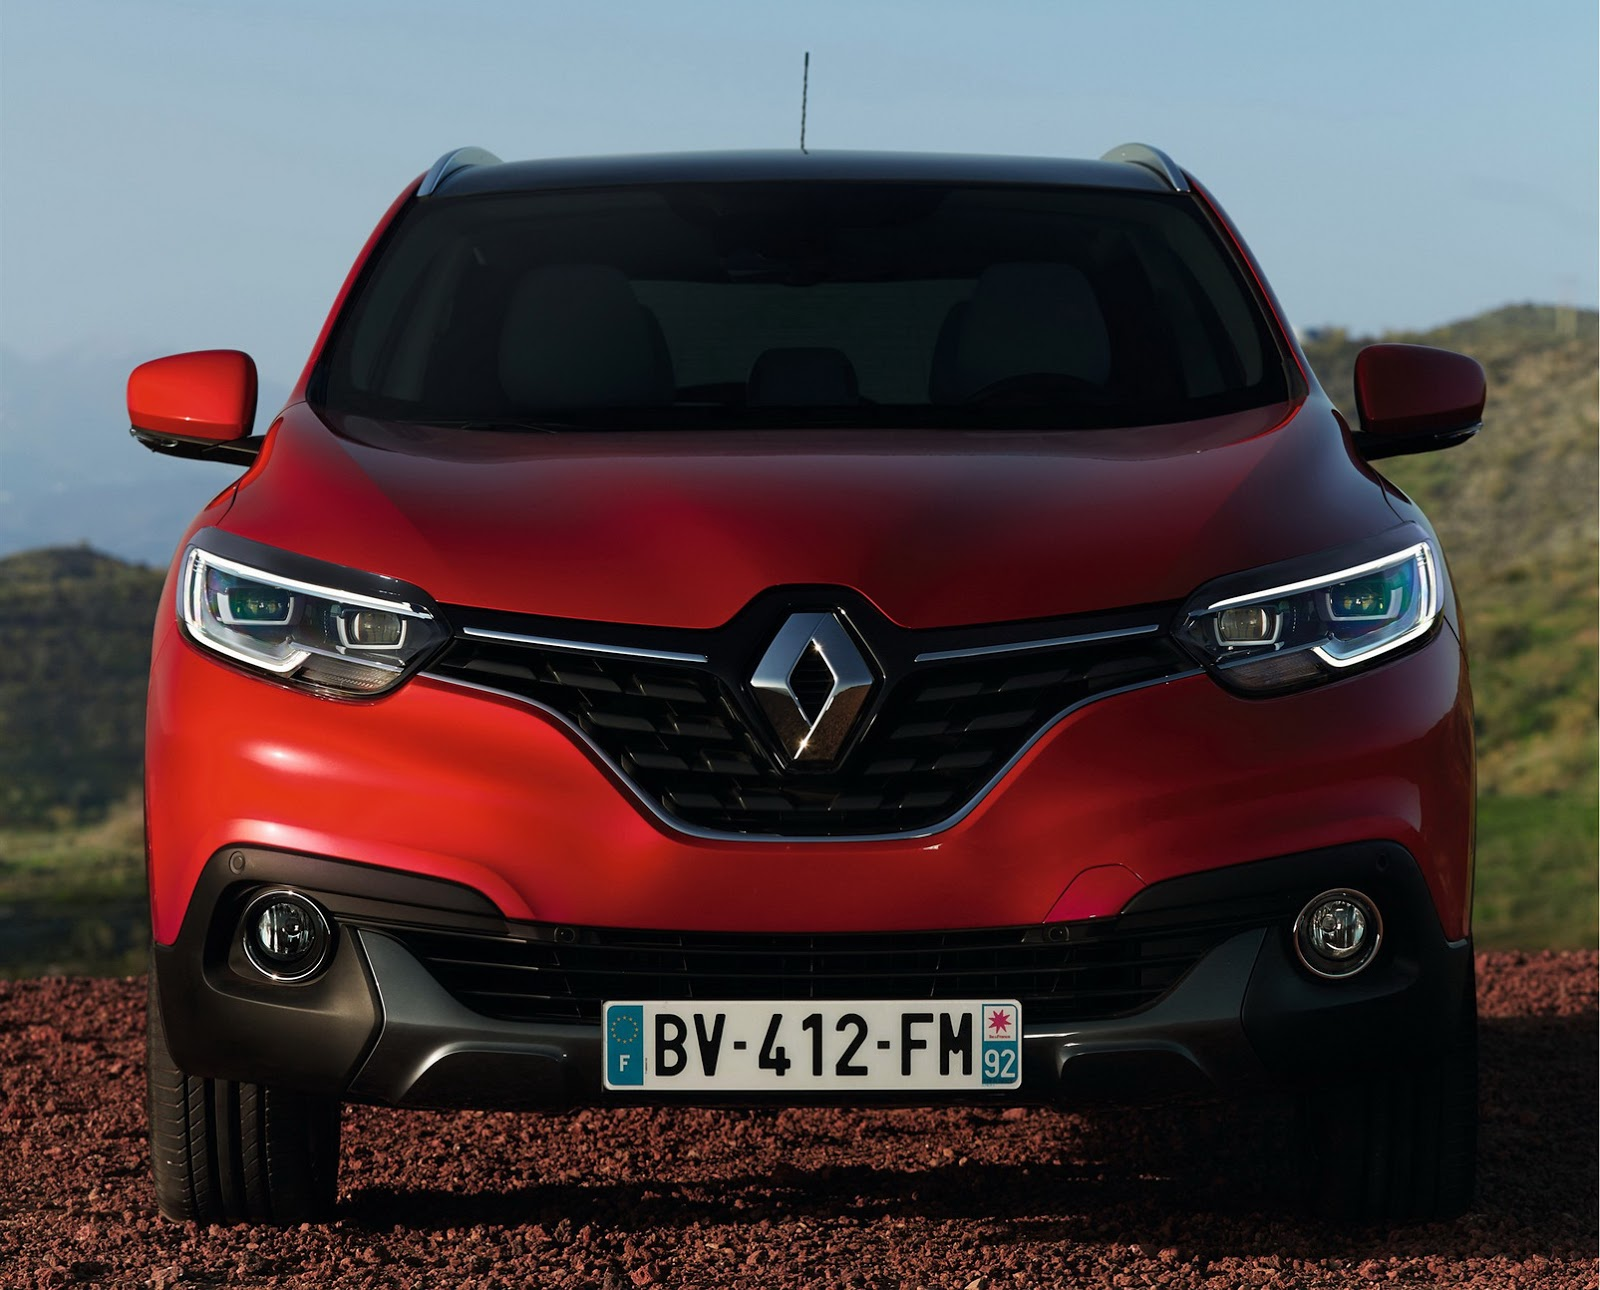 Renault Kadjar Price Announced For Europe Video Photo Gallery 96539 on tuning car radio